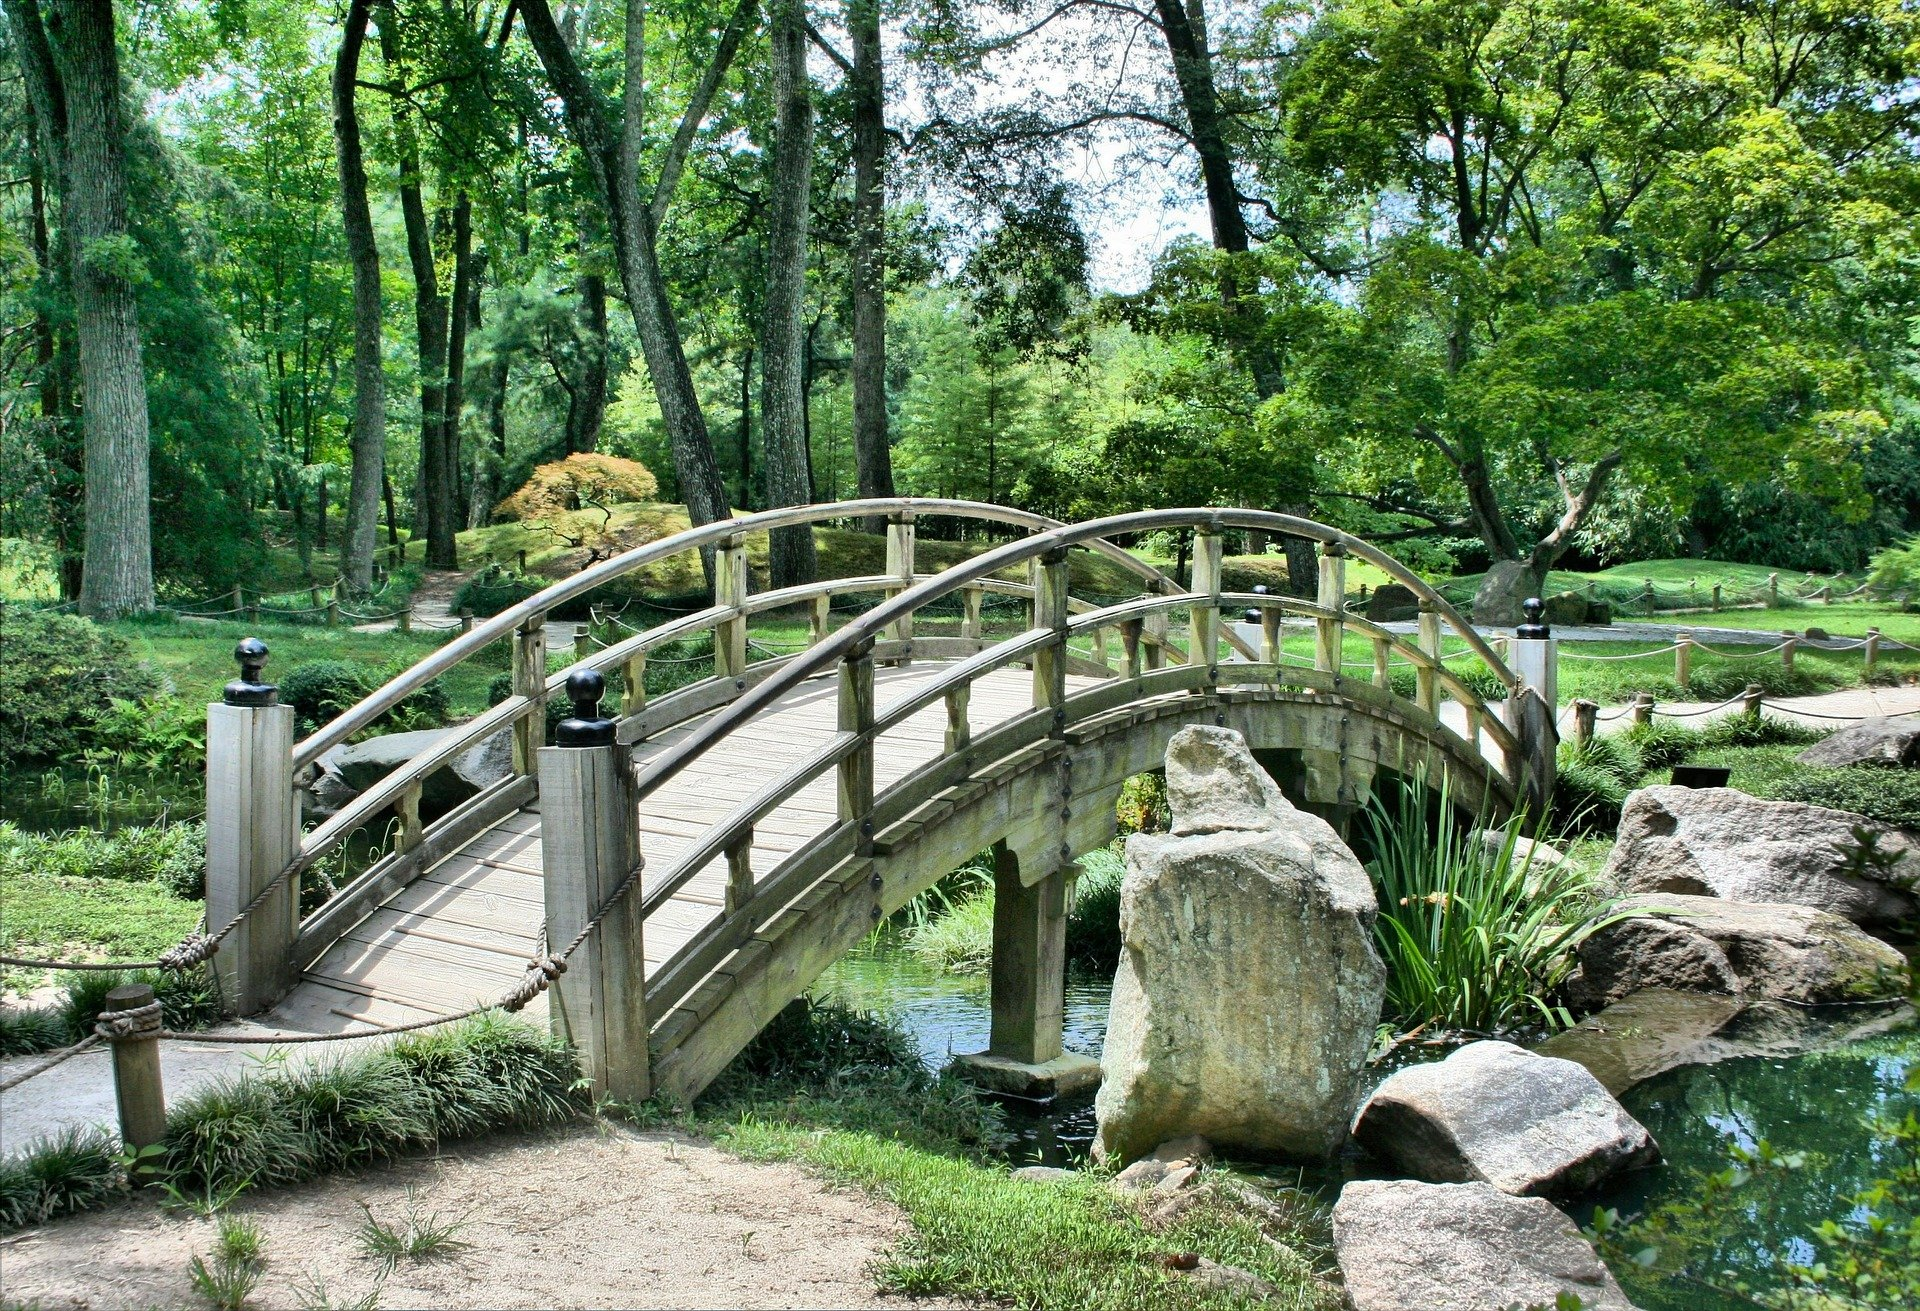 photo of garden with arched wooden bridge over stream